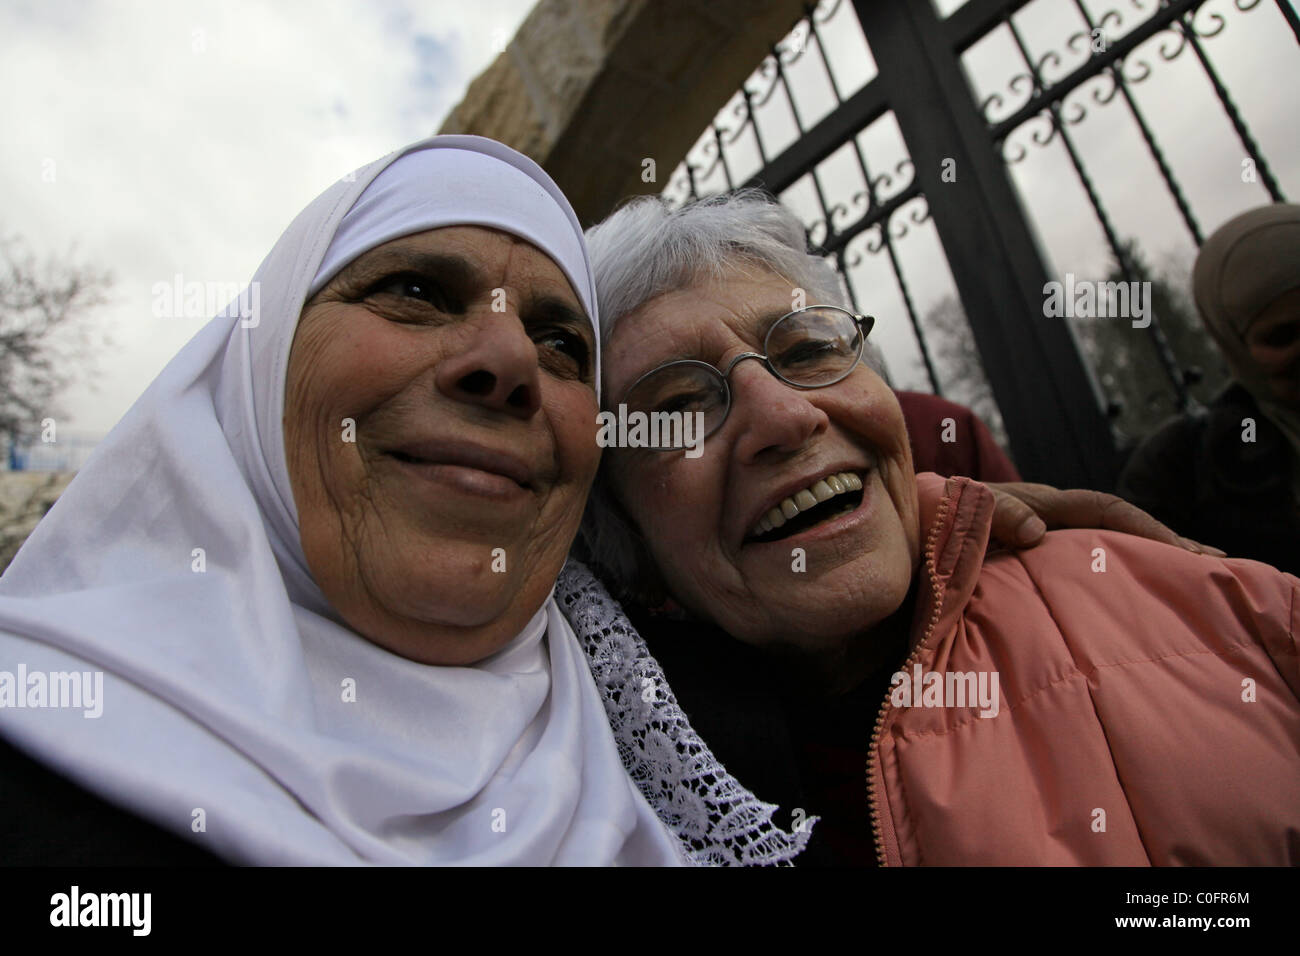 A Palestinian woman embracing an Israeli Jewish woman during a social gathering organized by The Parents Circle - Stock Image